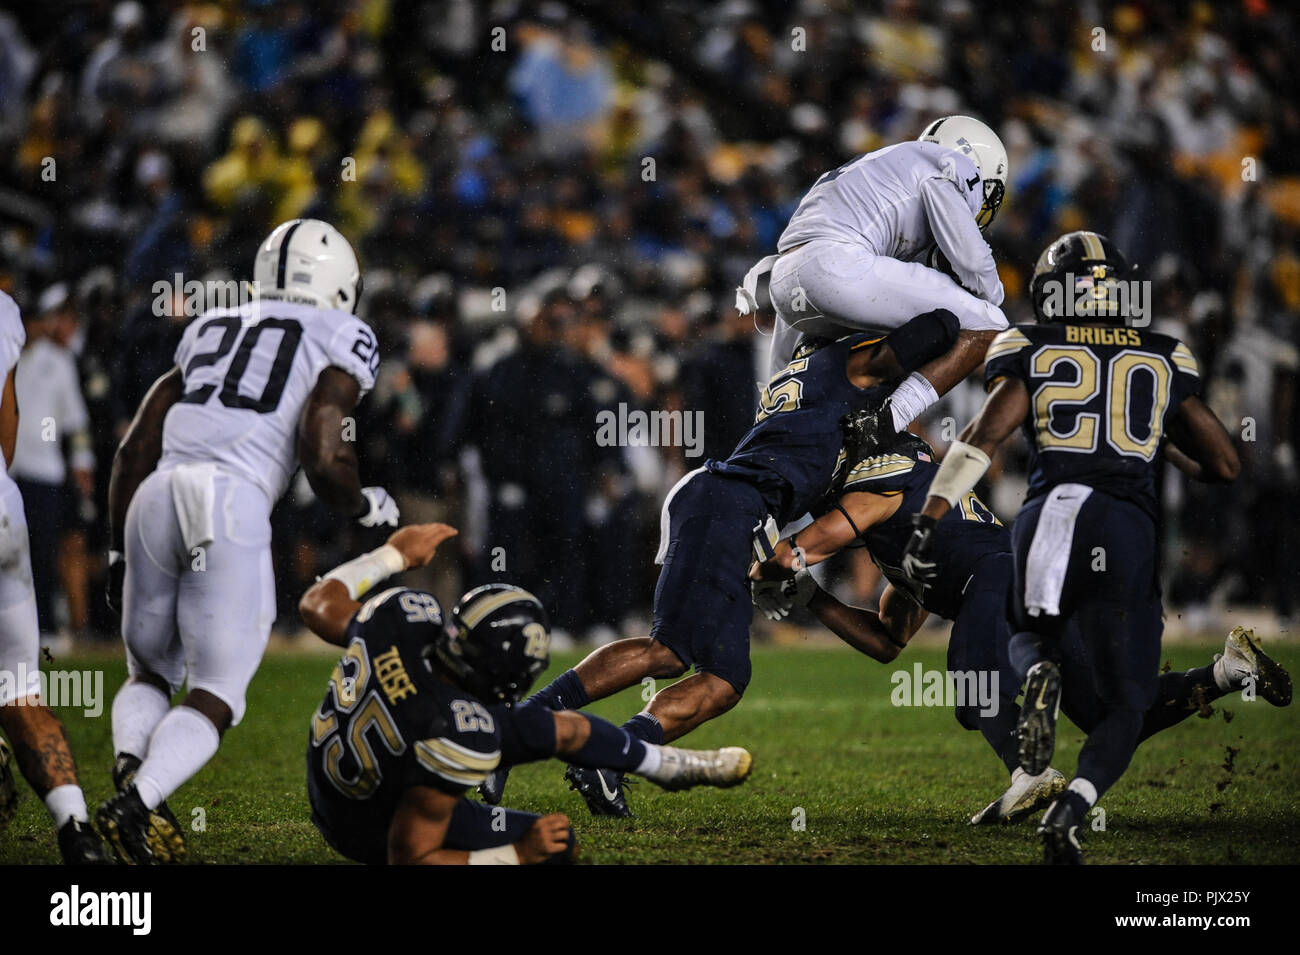 29a7ff87d September 8th, 2018: Nittany Lions #1 KJ Hamler during the Pitt Panthers vs  Penn State game at Heinz Field in Pittsburgh, PA. Jason Pohuski/CSM